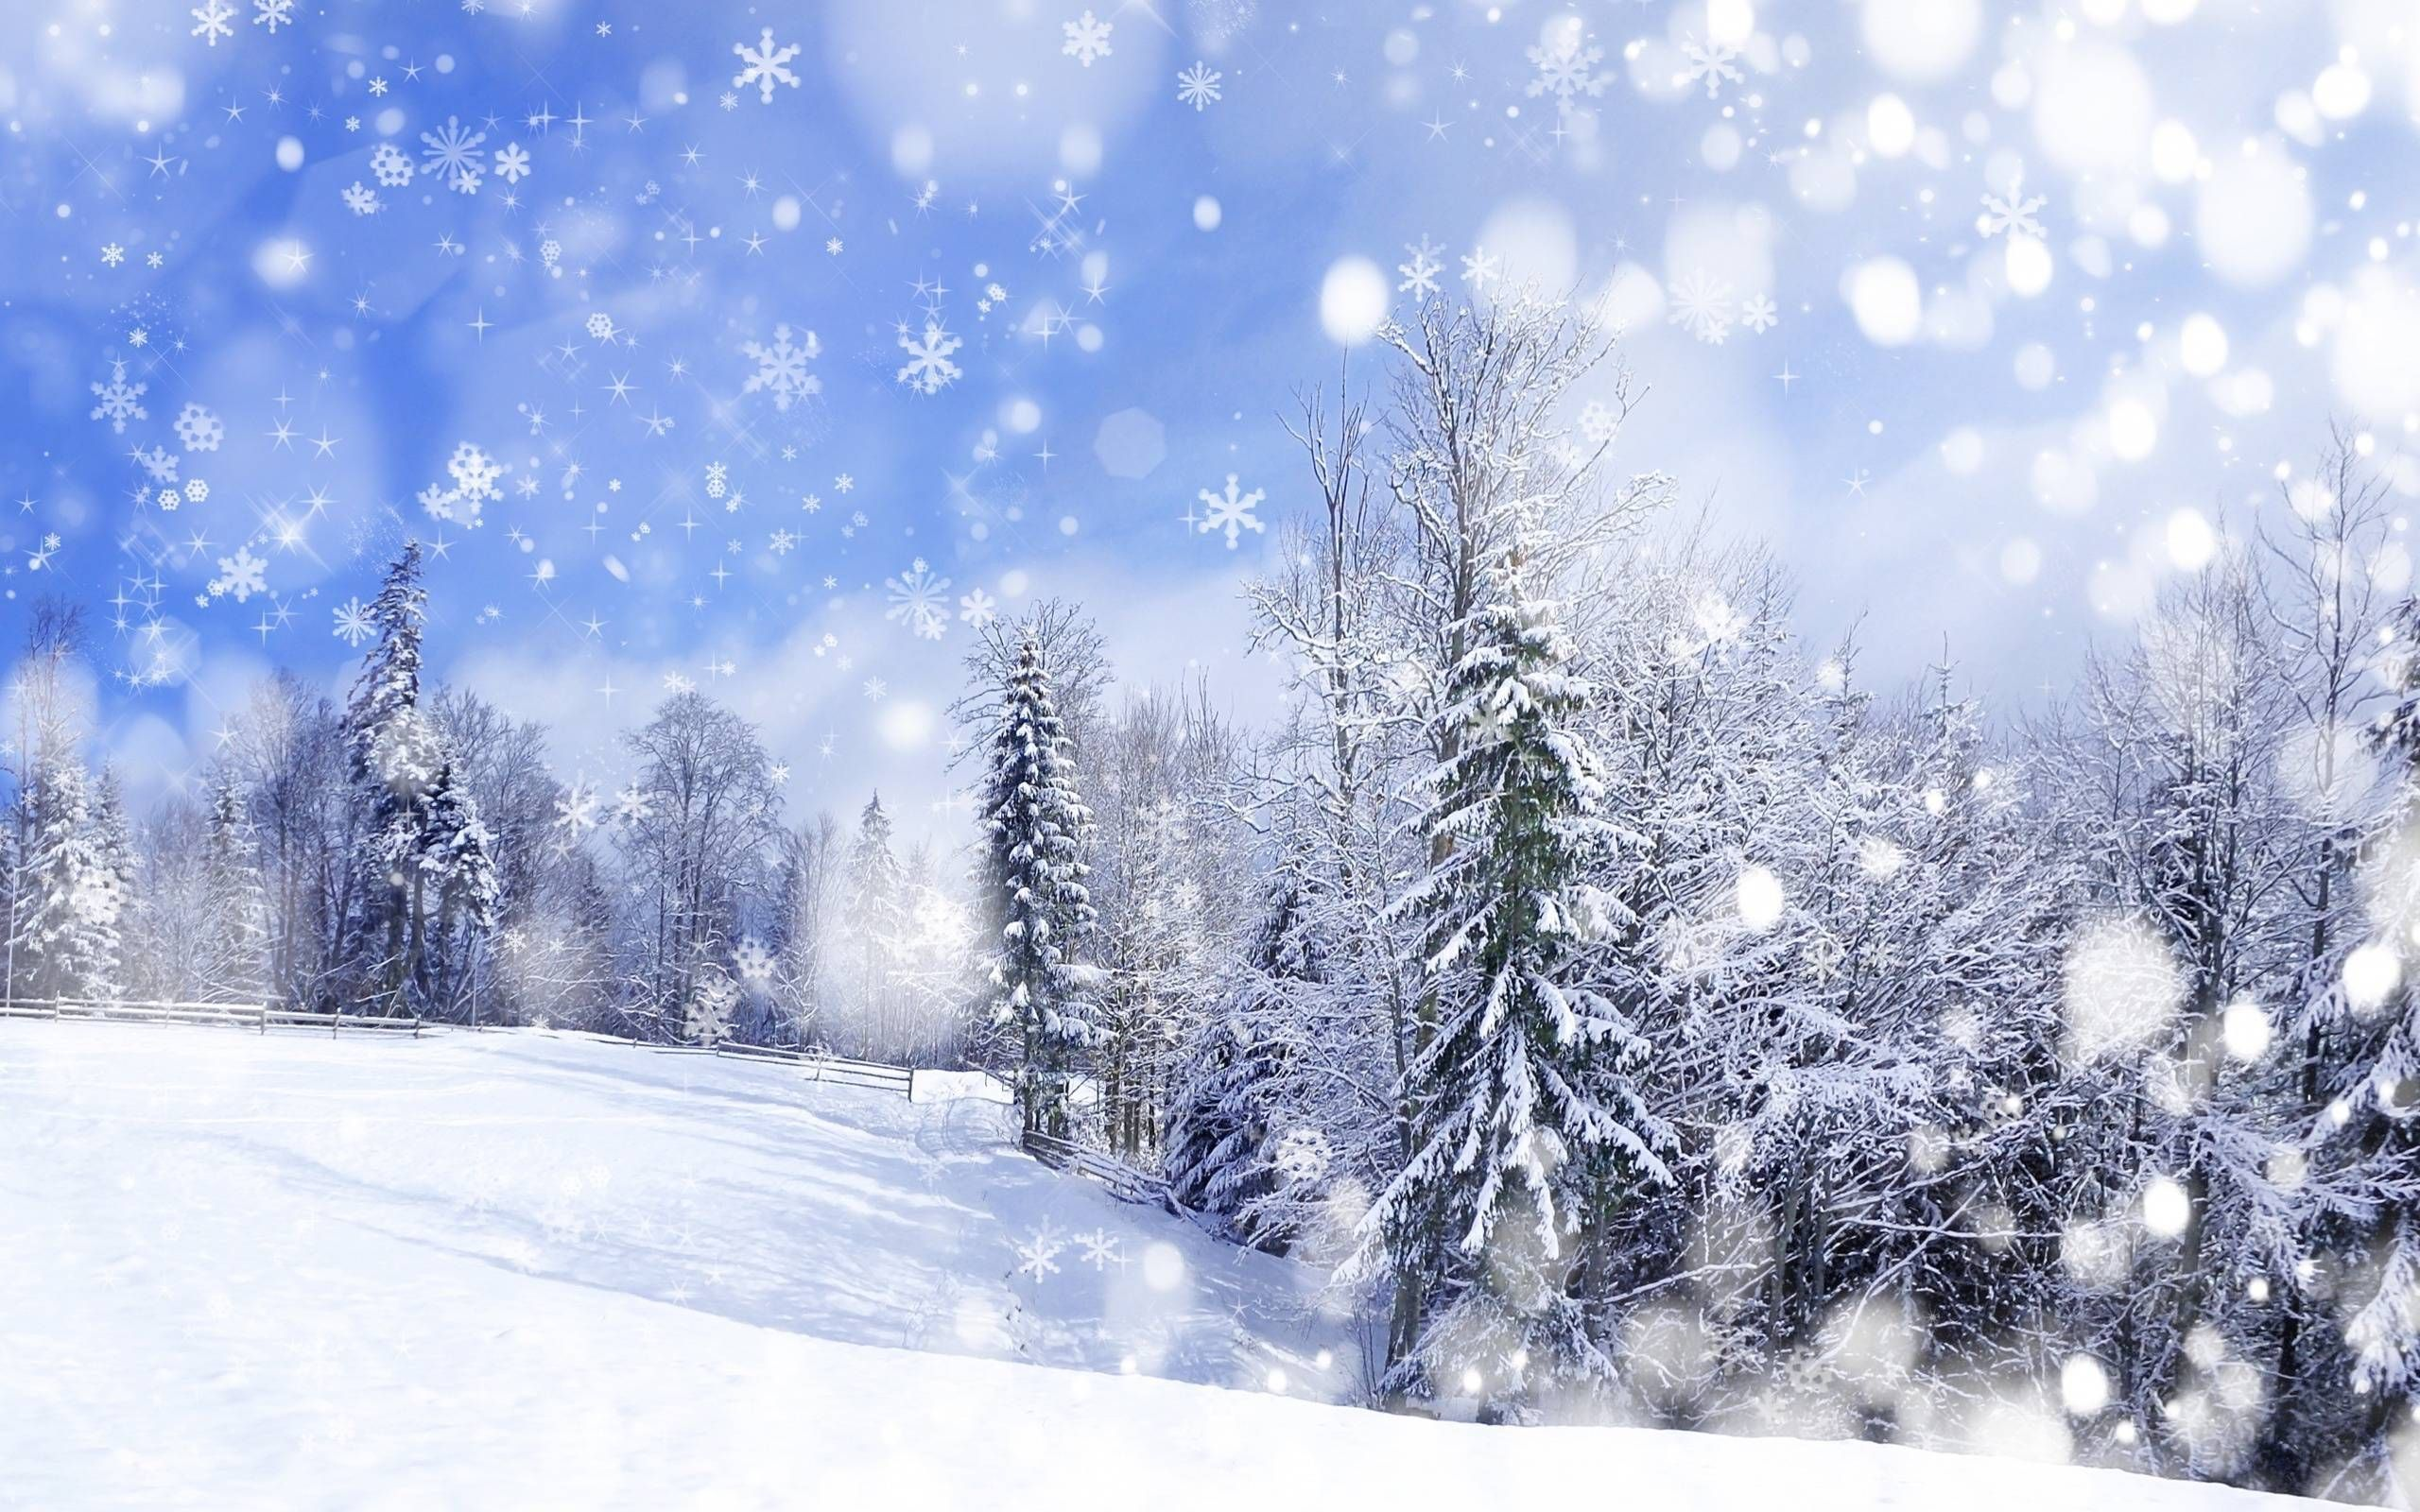 Anime Winter Scenery Wallpaper1 Winter scenery, Scenery